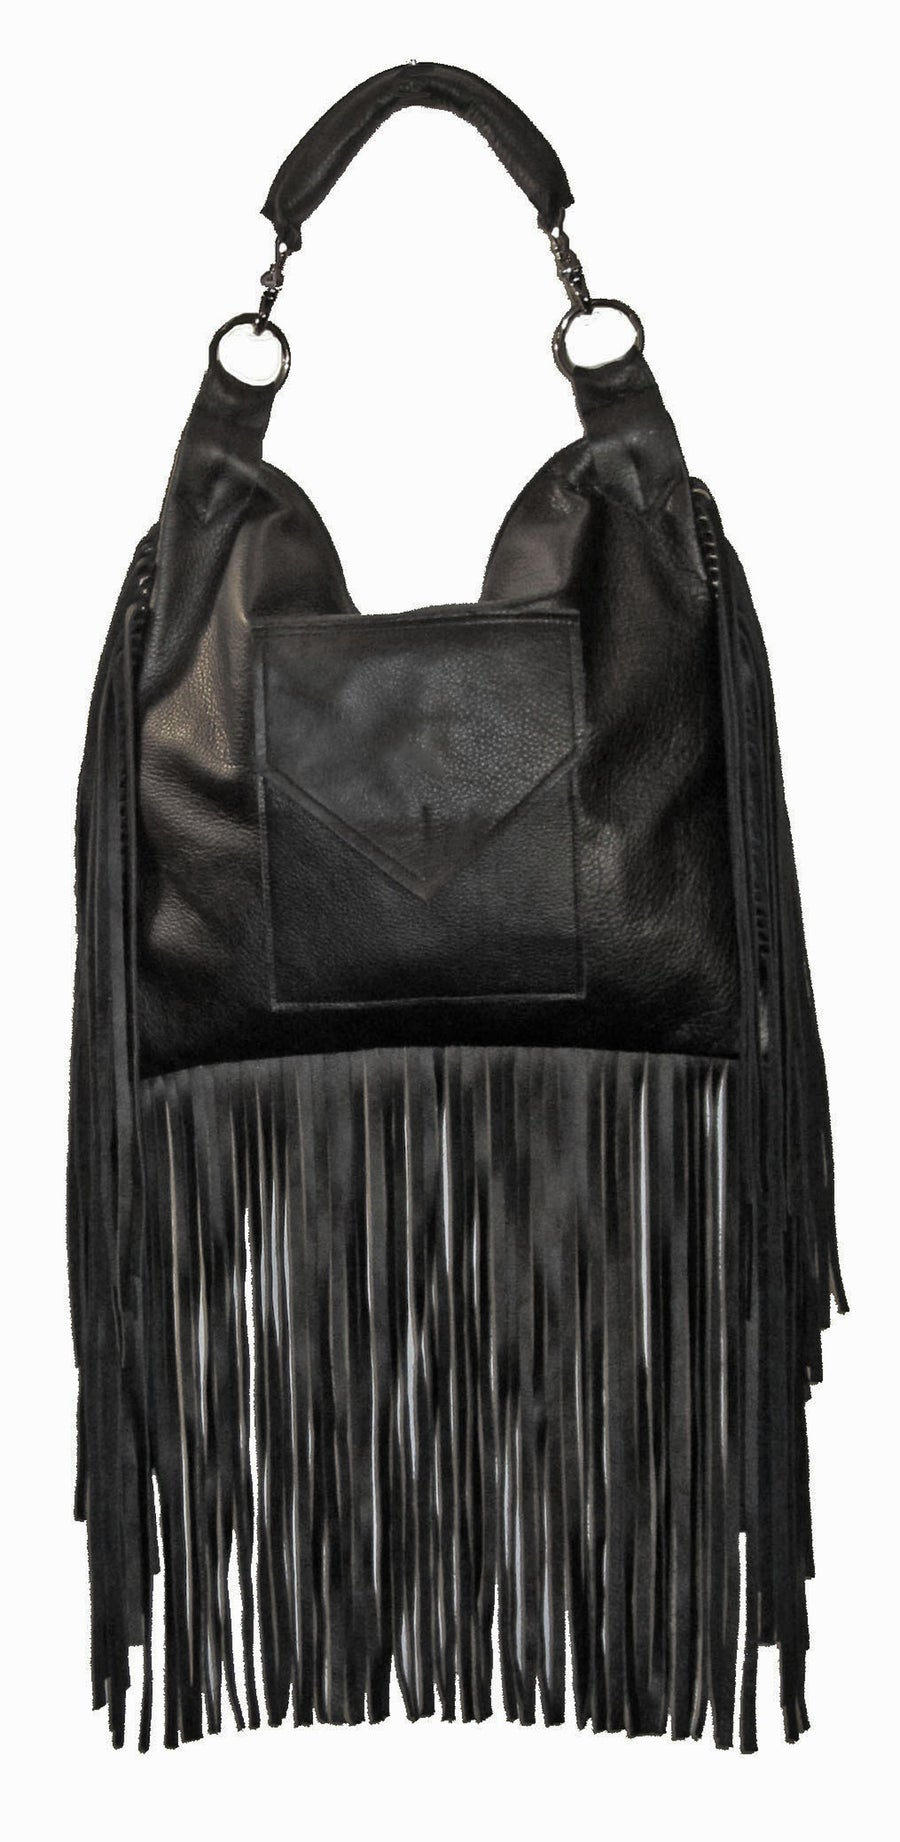 Image of Freebird Fringed Bag- Recycled Leather or Vegan